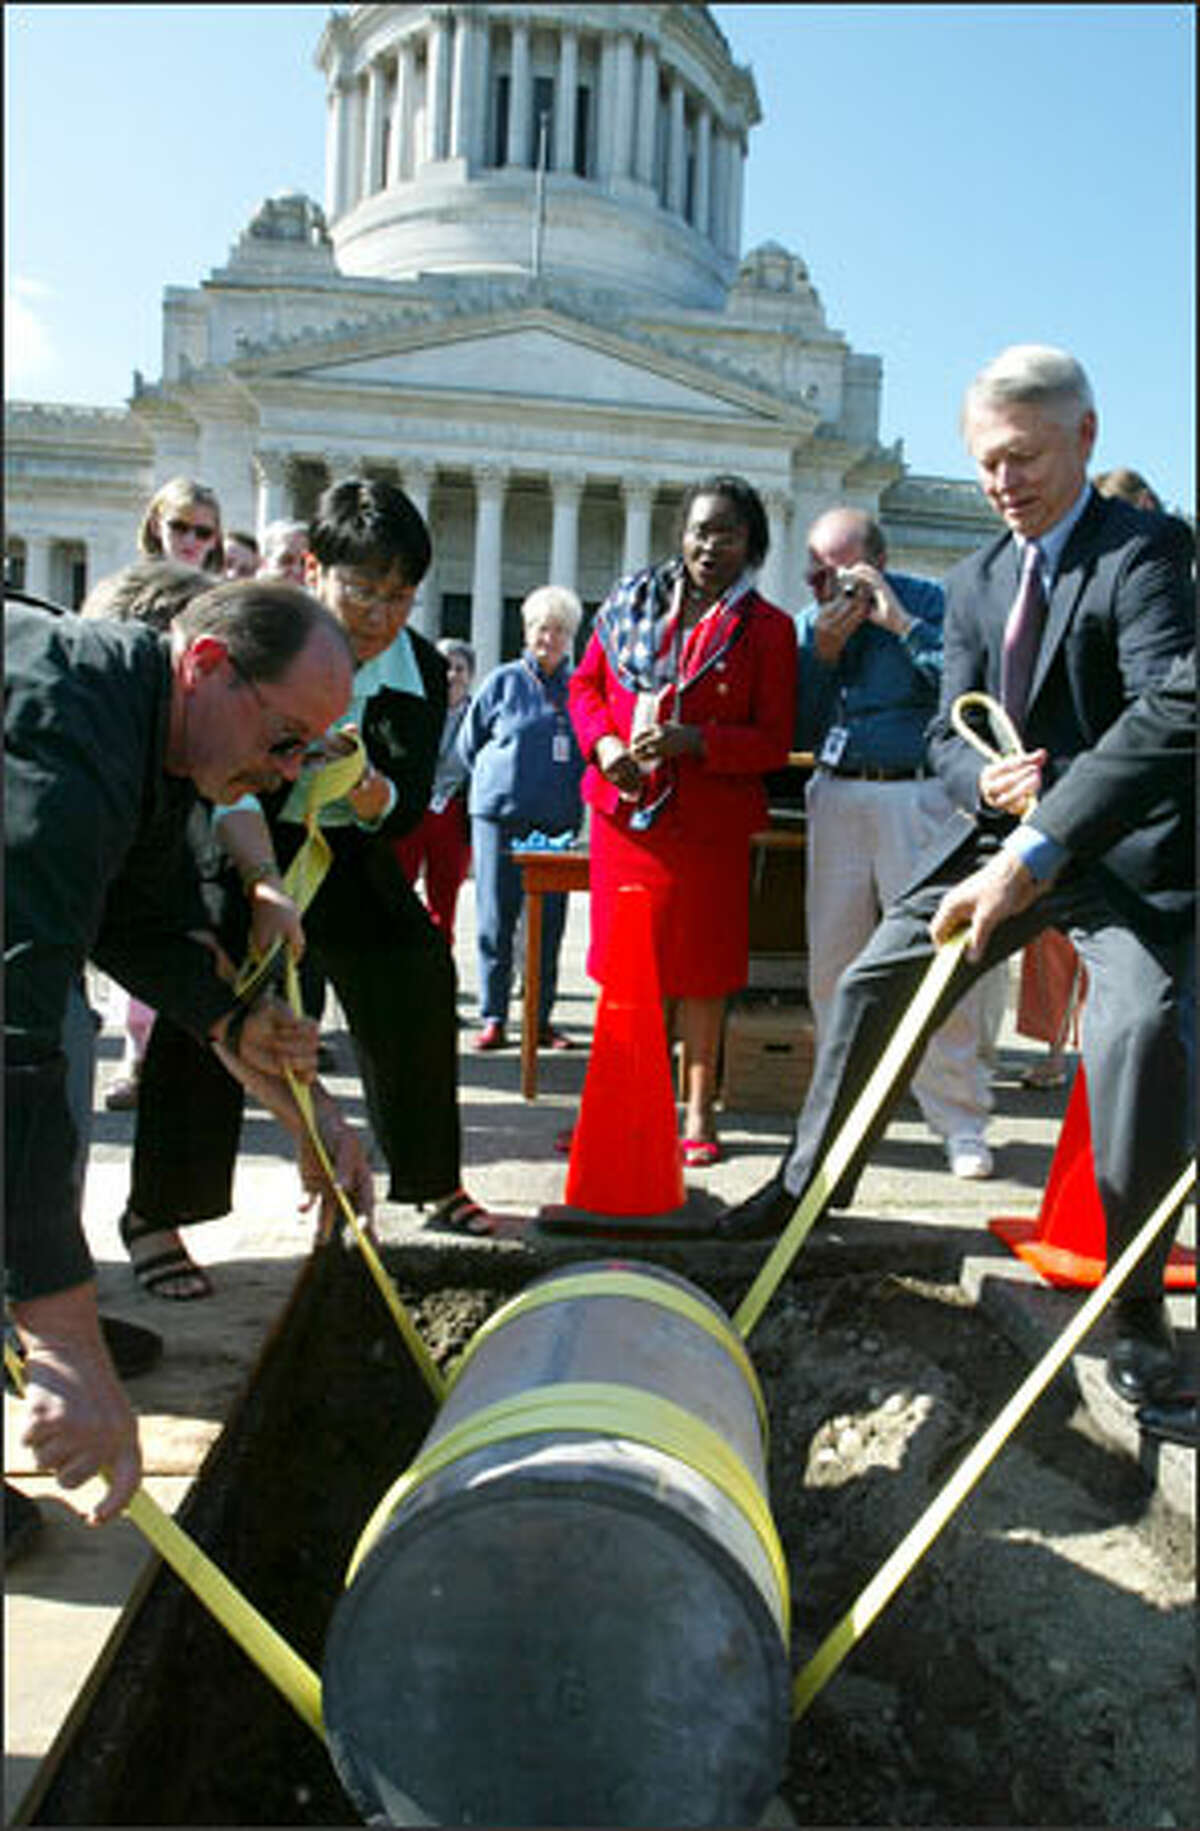 ecretary of State Sam Reed, right, joins other officials to lower a 1953 time capsule into the ground outside the state Capitol on Thursday. The capsule had been missing for nearly half a century until it was found in 2002.